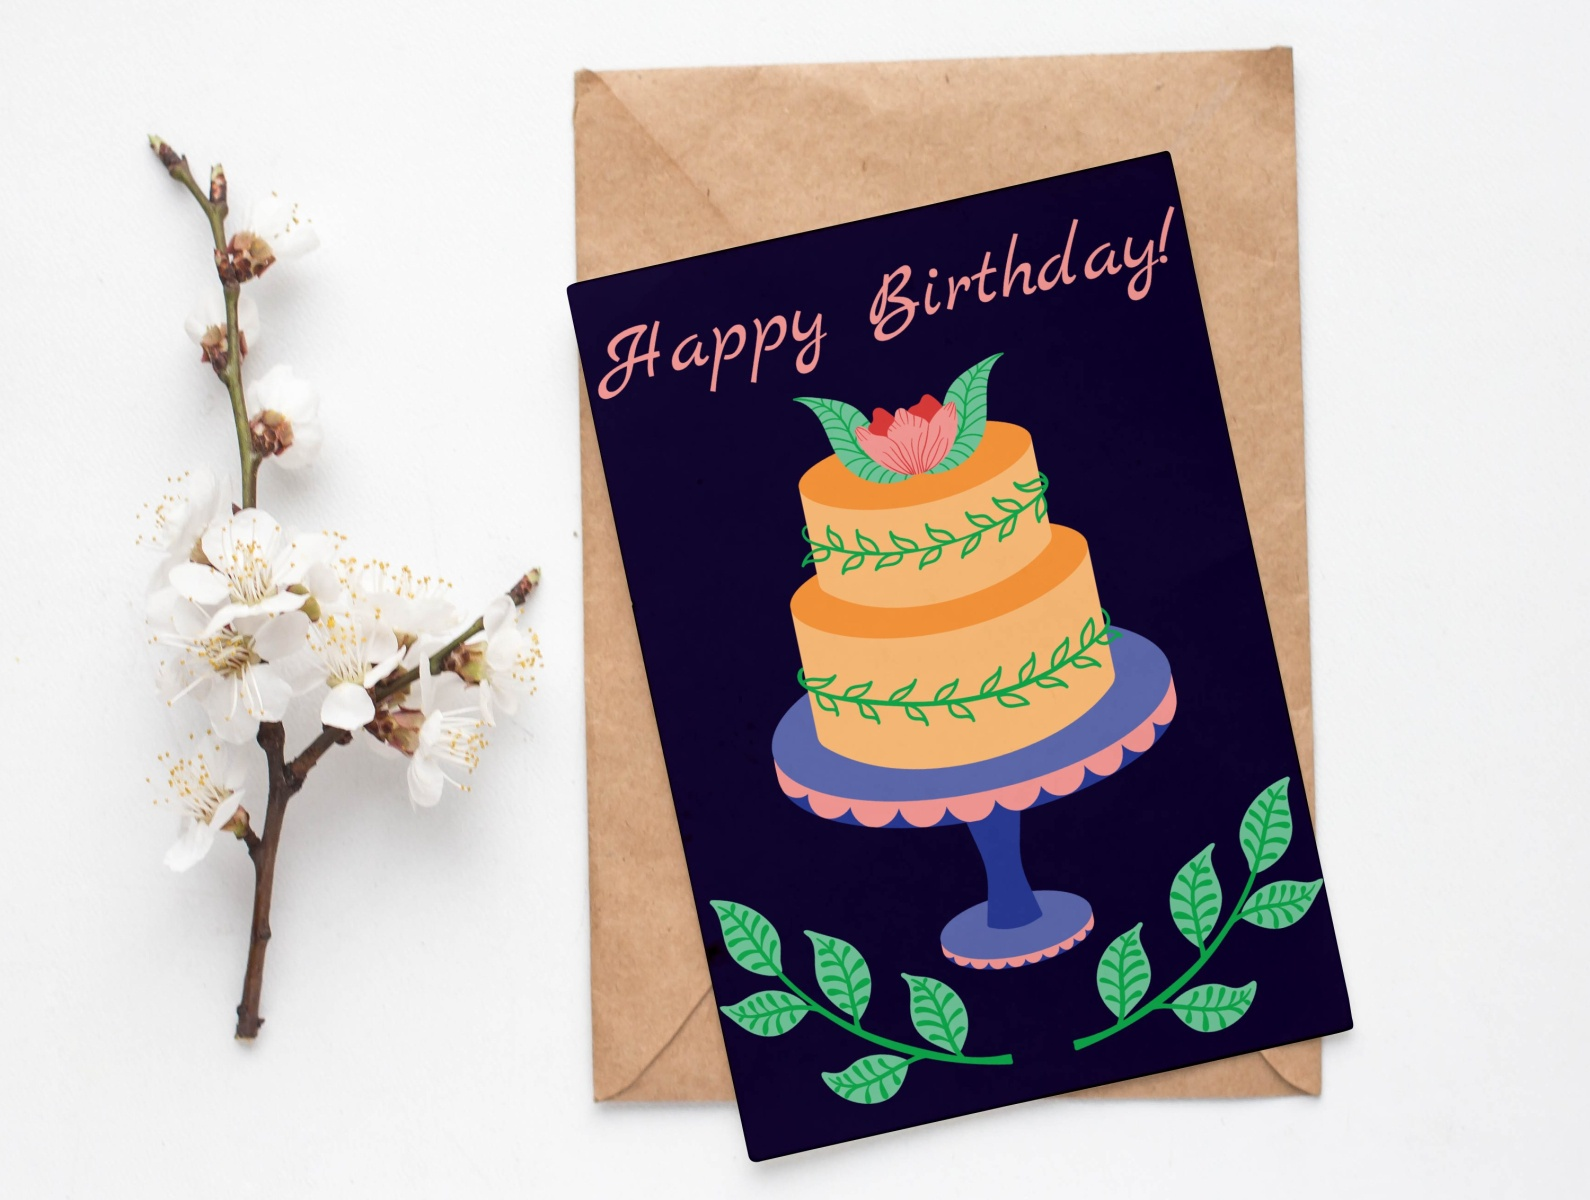 Outstanding Birthday Cake By Irena Hristova On Dribbble Personalised Birthday Cards Paralily Jamesorg